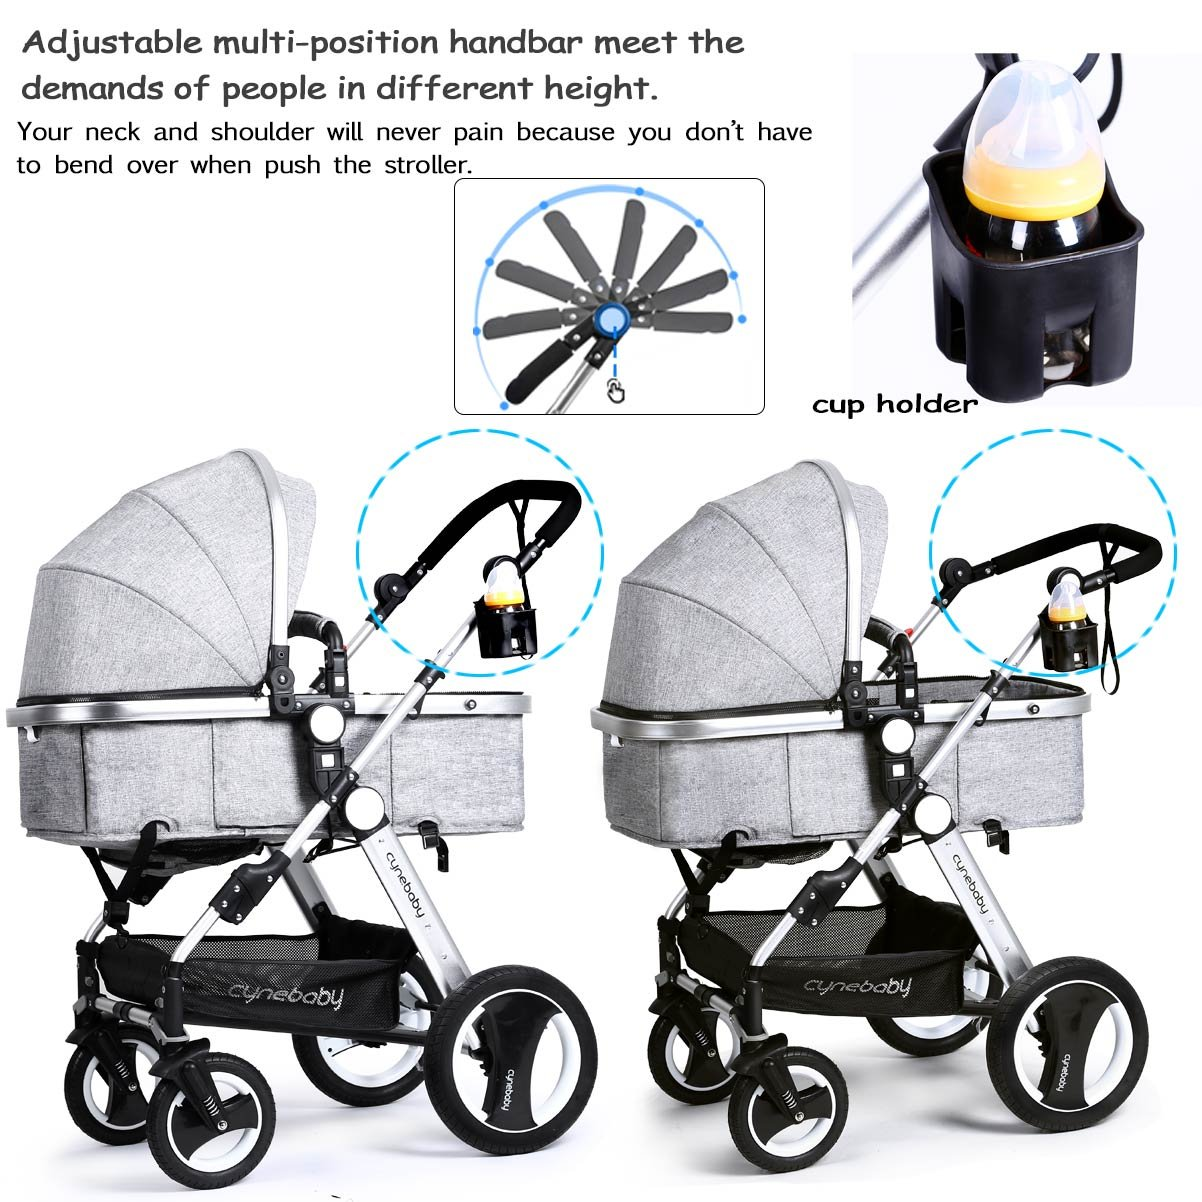 Infant Baby Stroller Toddler Carriage - Cynebaby Folding Pram Bassinet Strollers with Cup Holder (blue) by cynebaby (Image #6)